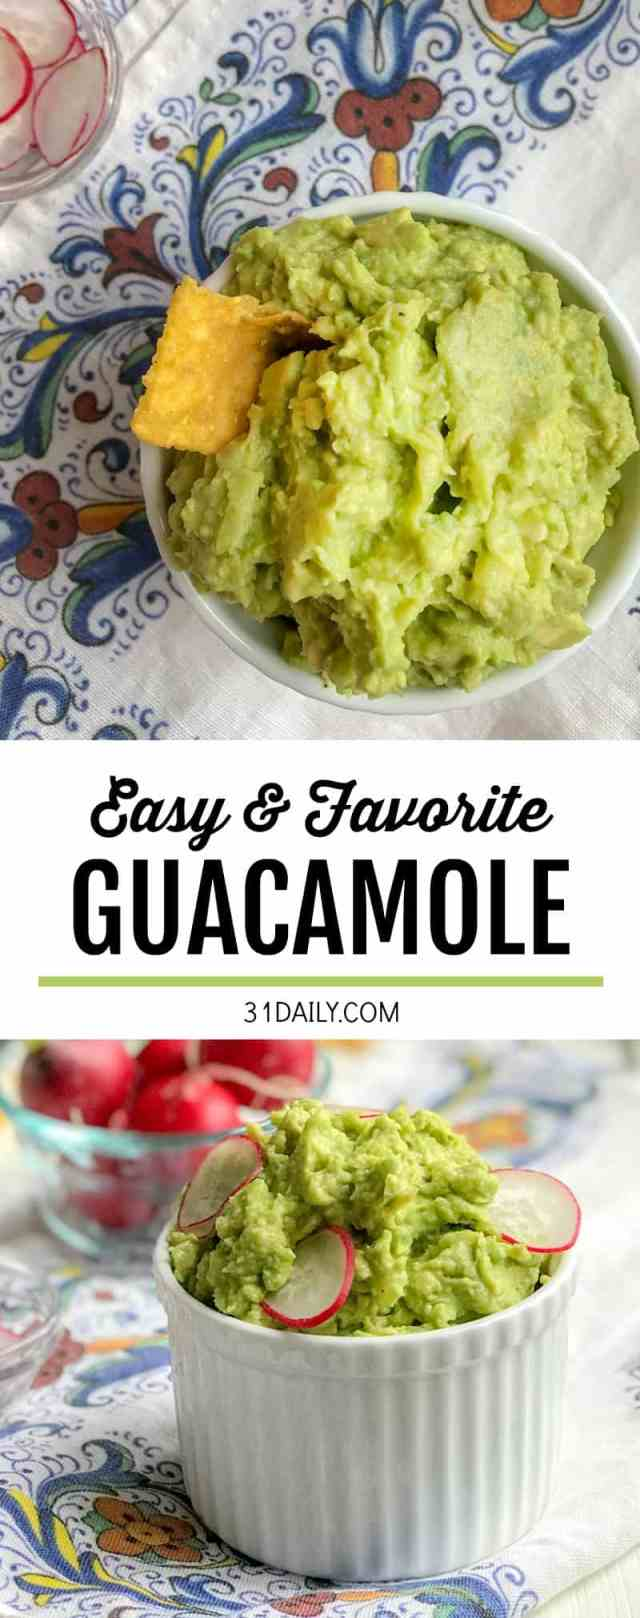 All Time Favorite Best Guacamole Recipe | 31Daily.com